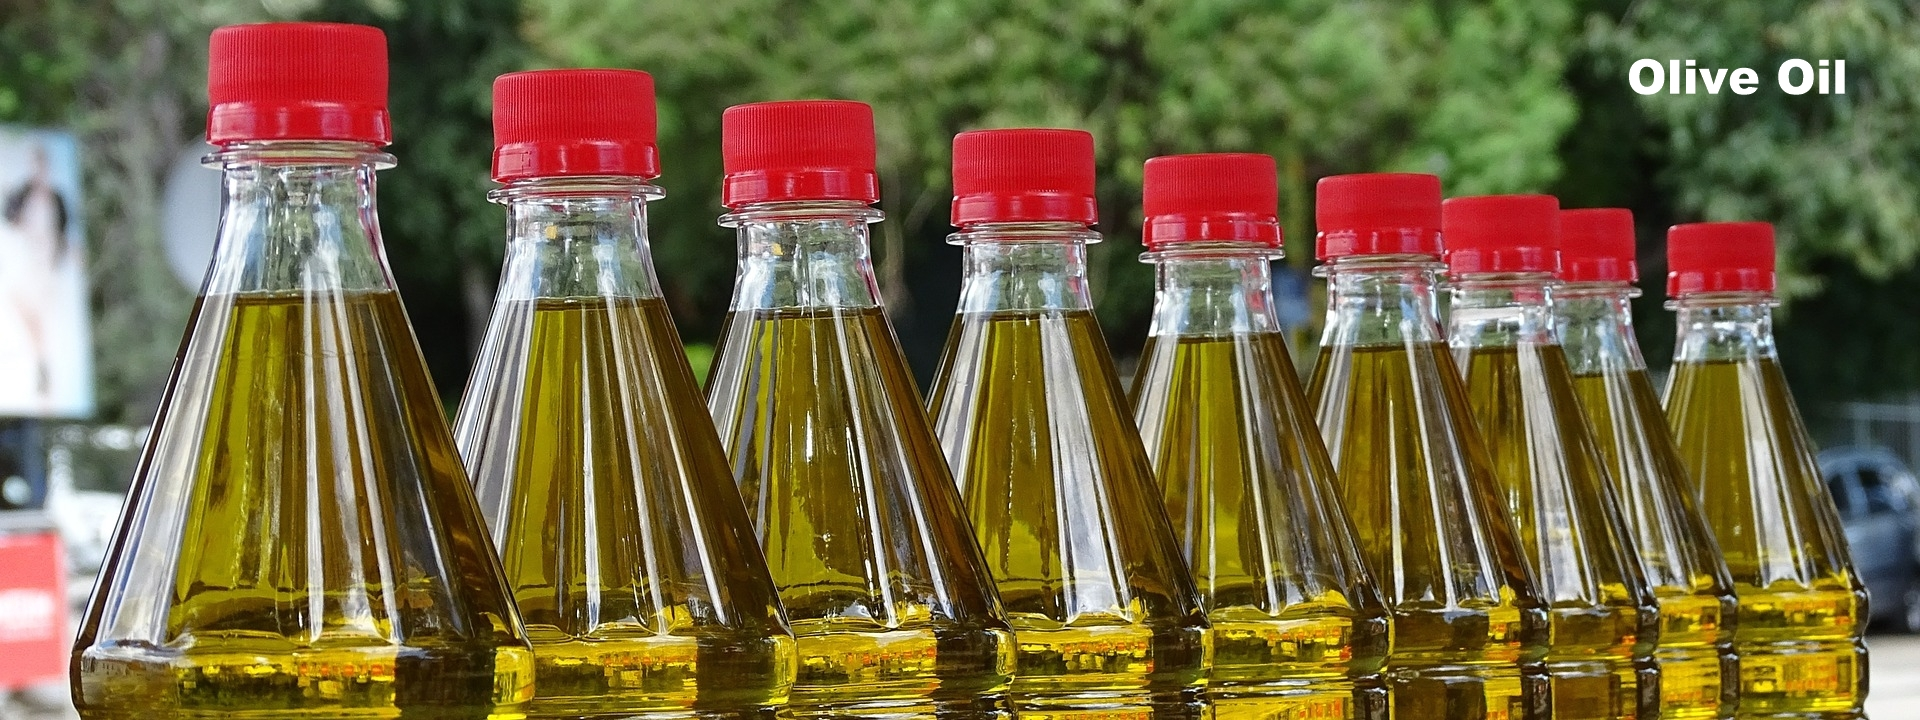 Olive Oil - Edible Oil